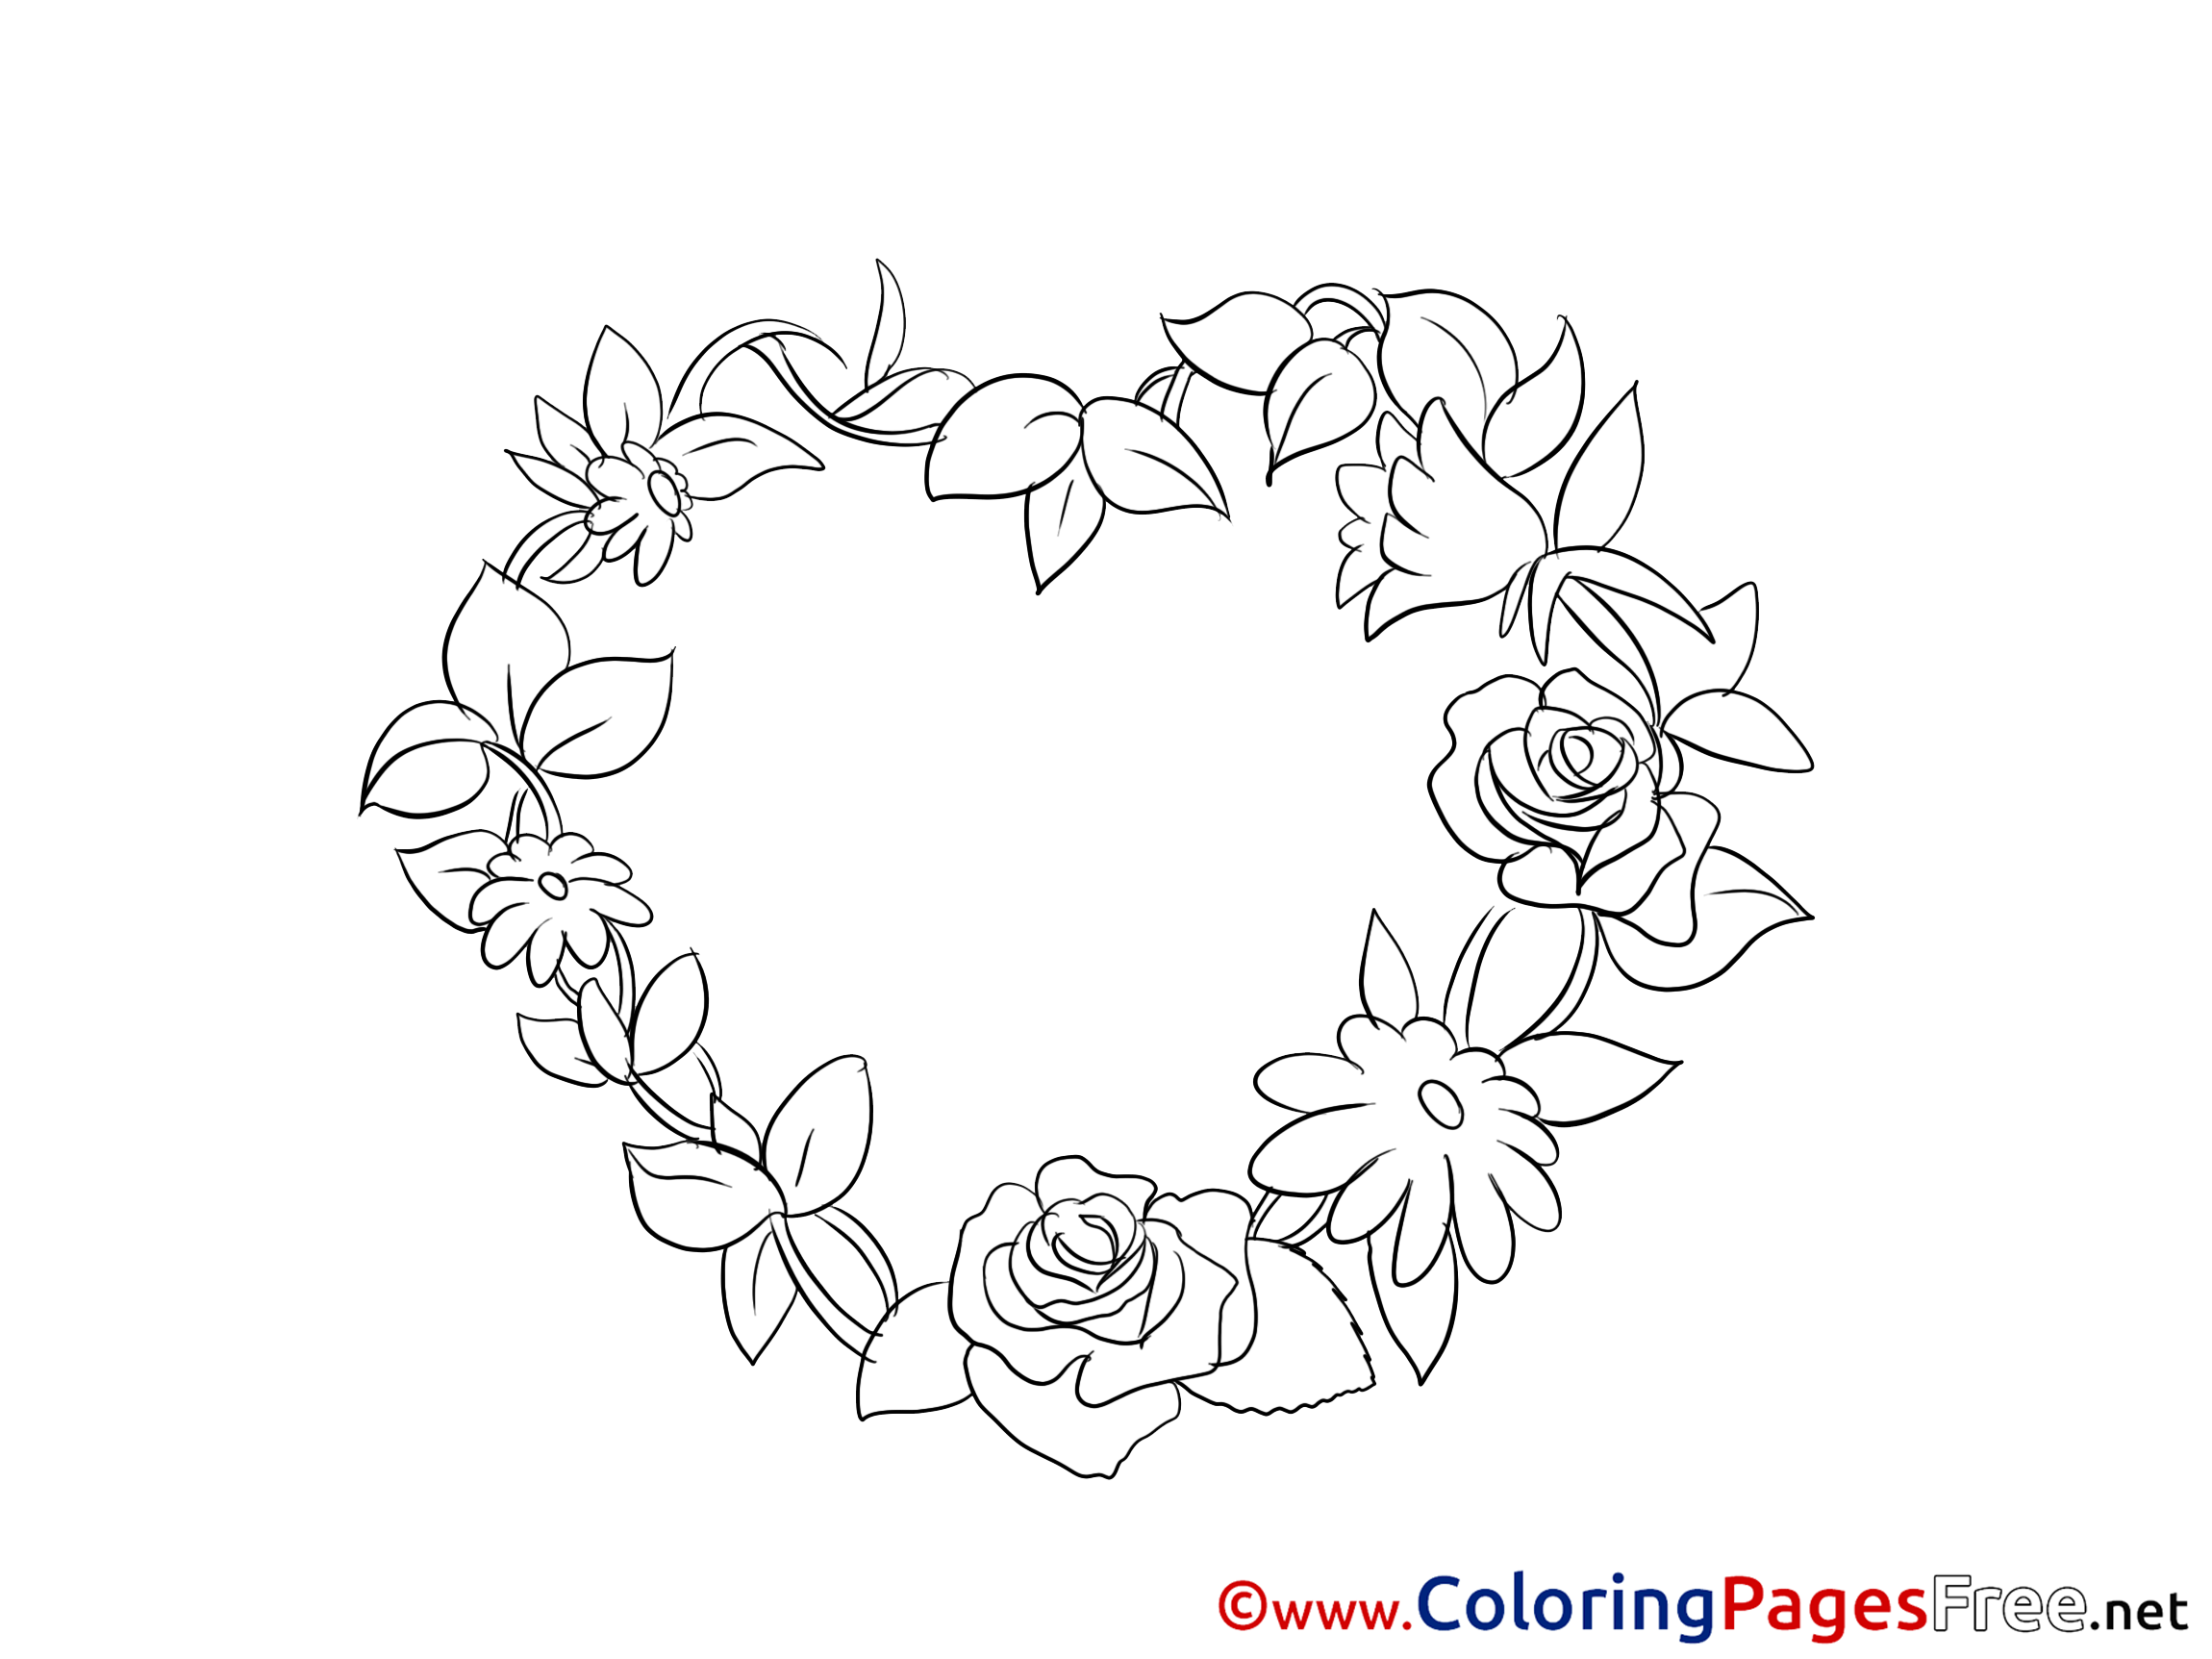 rose garland coloring pages - photo#18